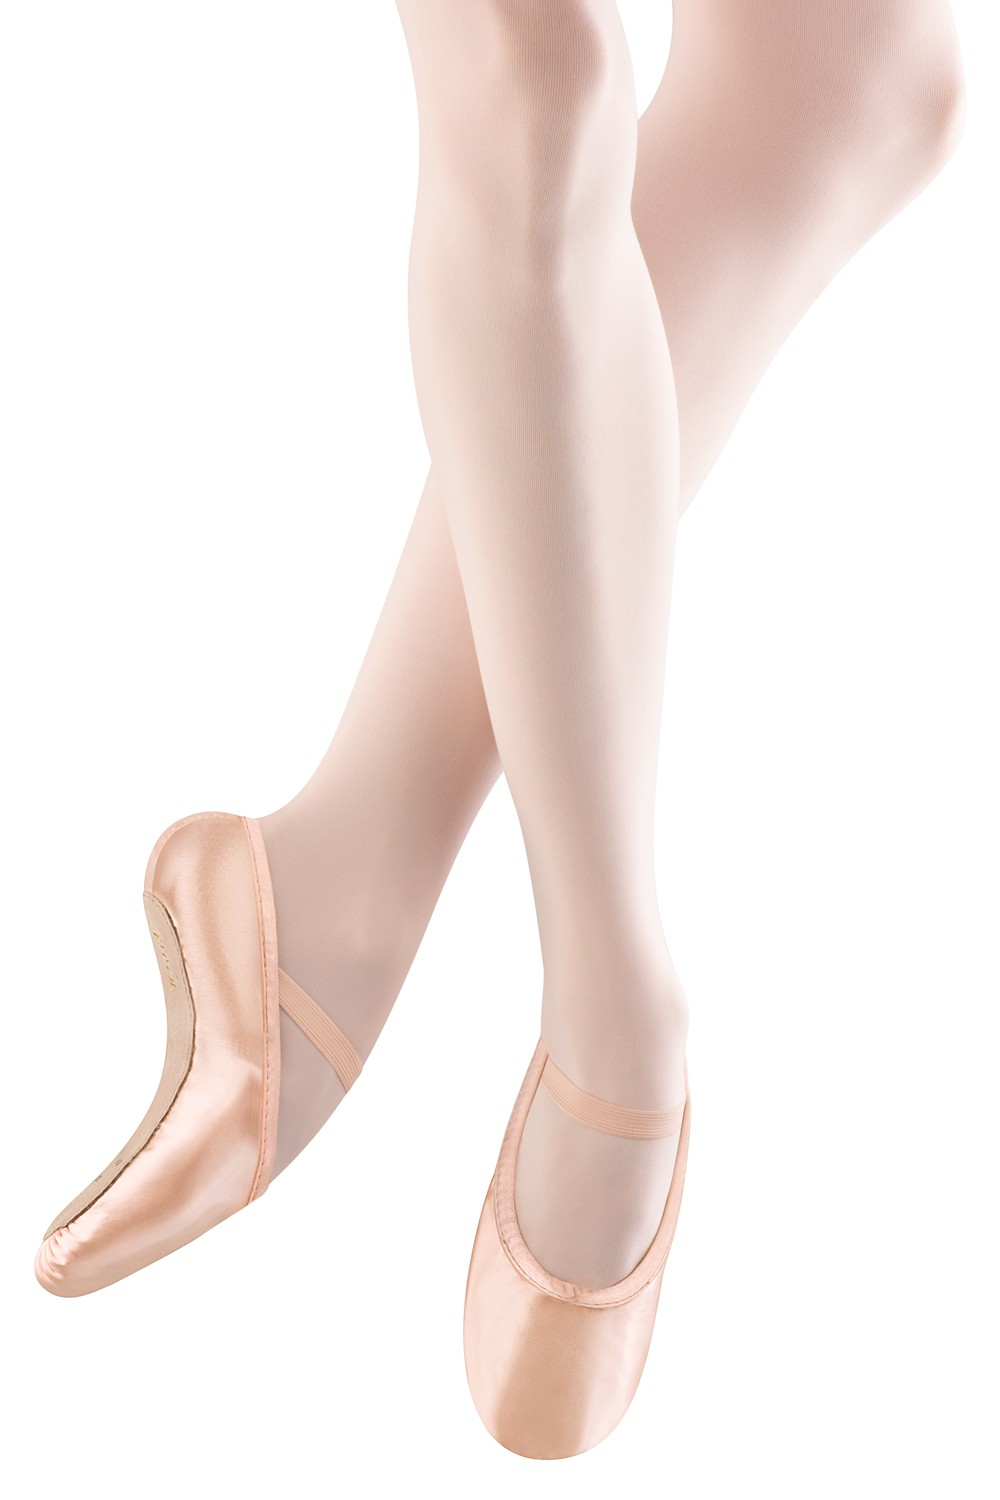 Stretch Satin Ballet Slipper - Girls Girl's Ballet Shoes